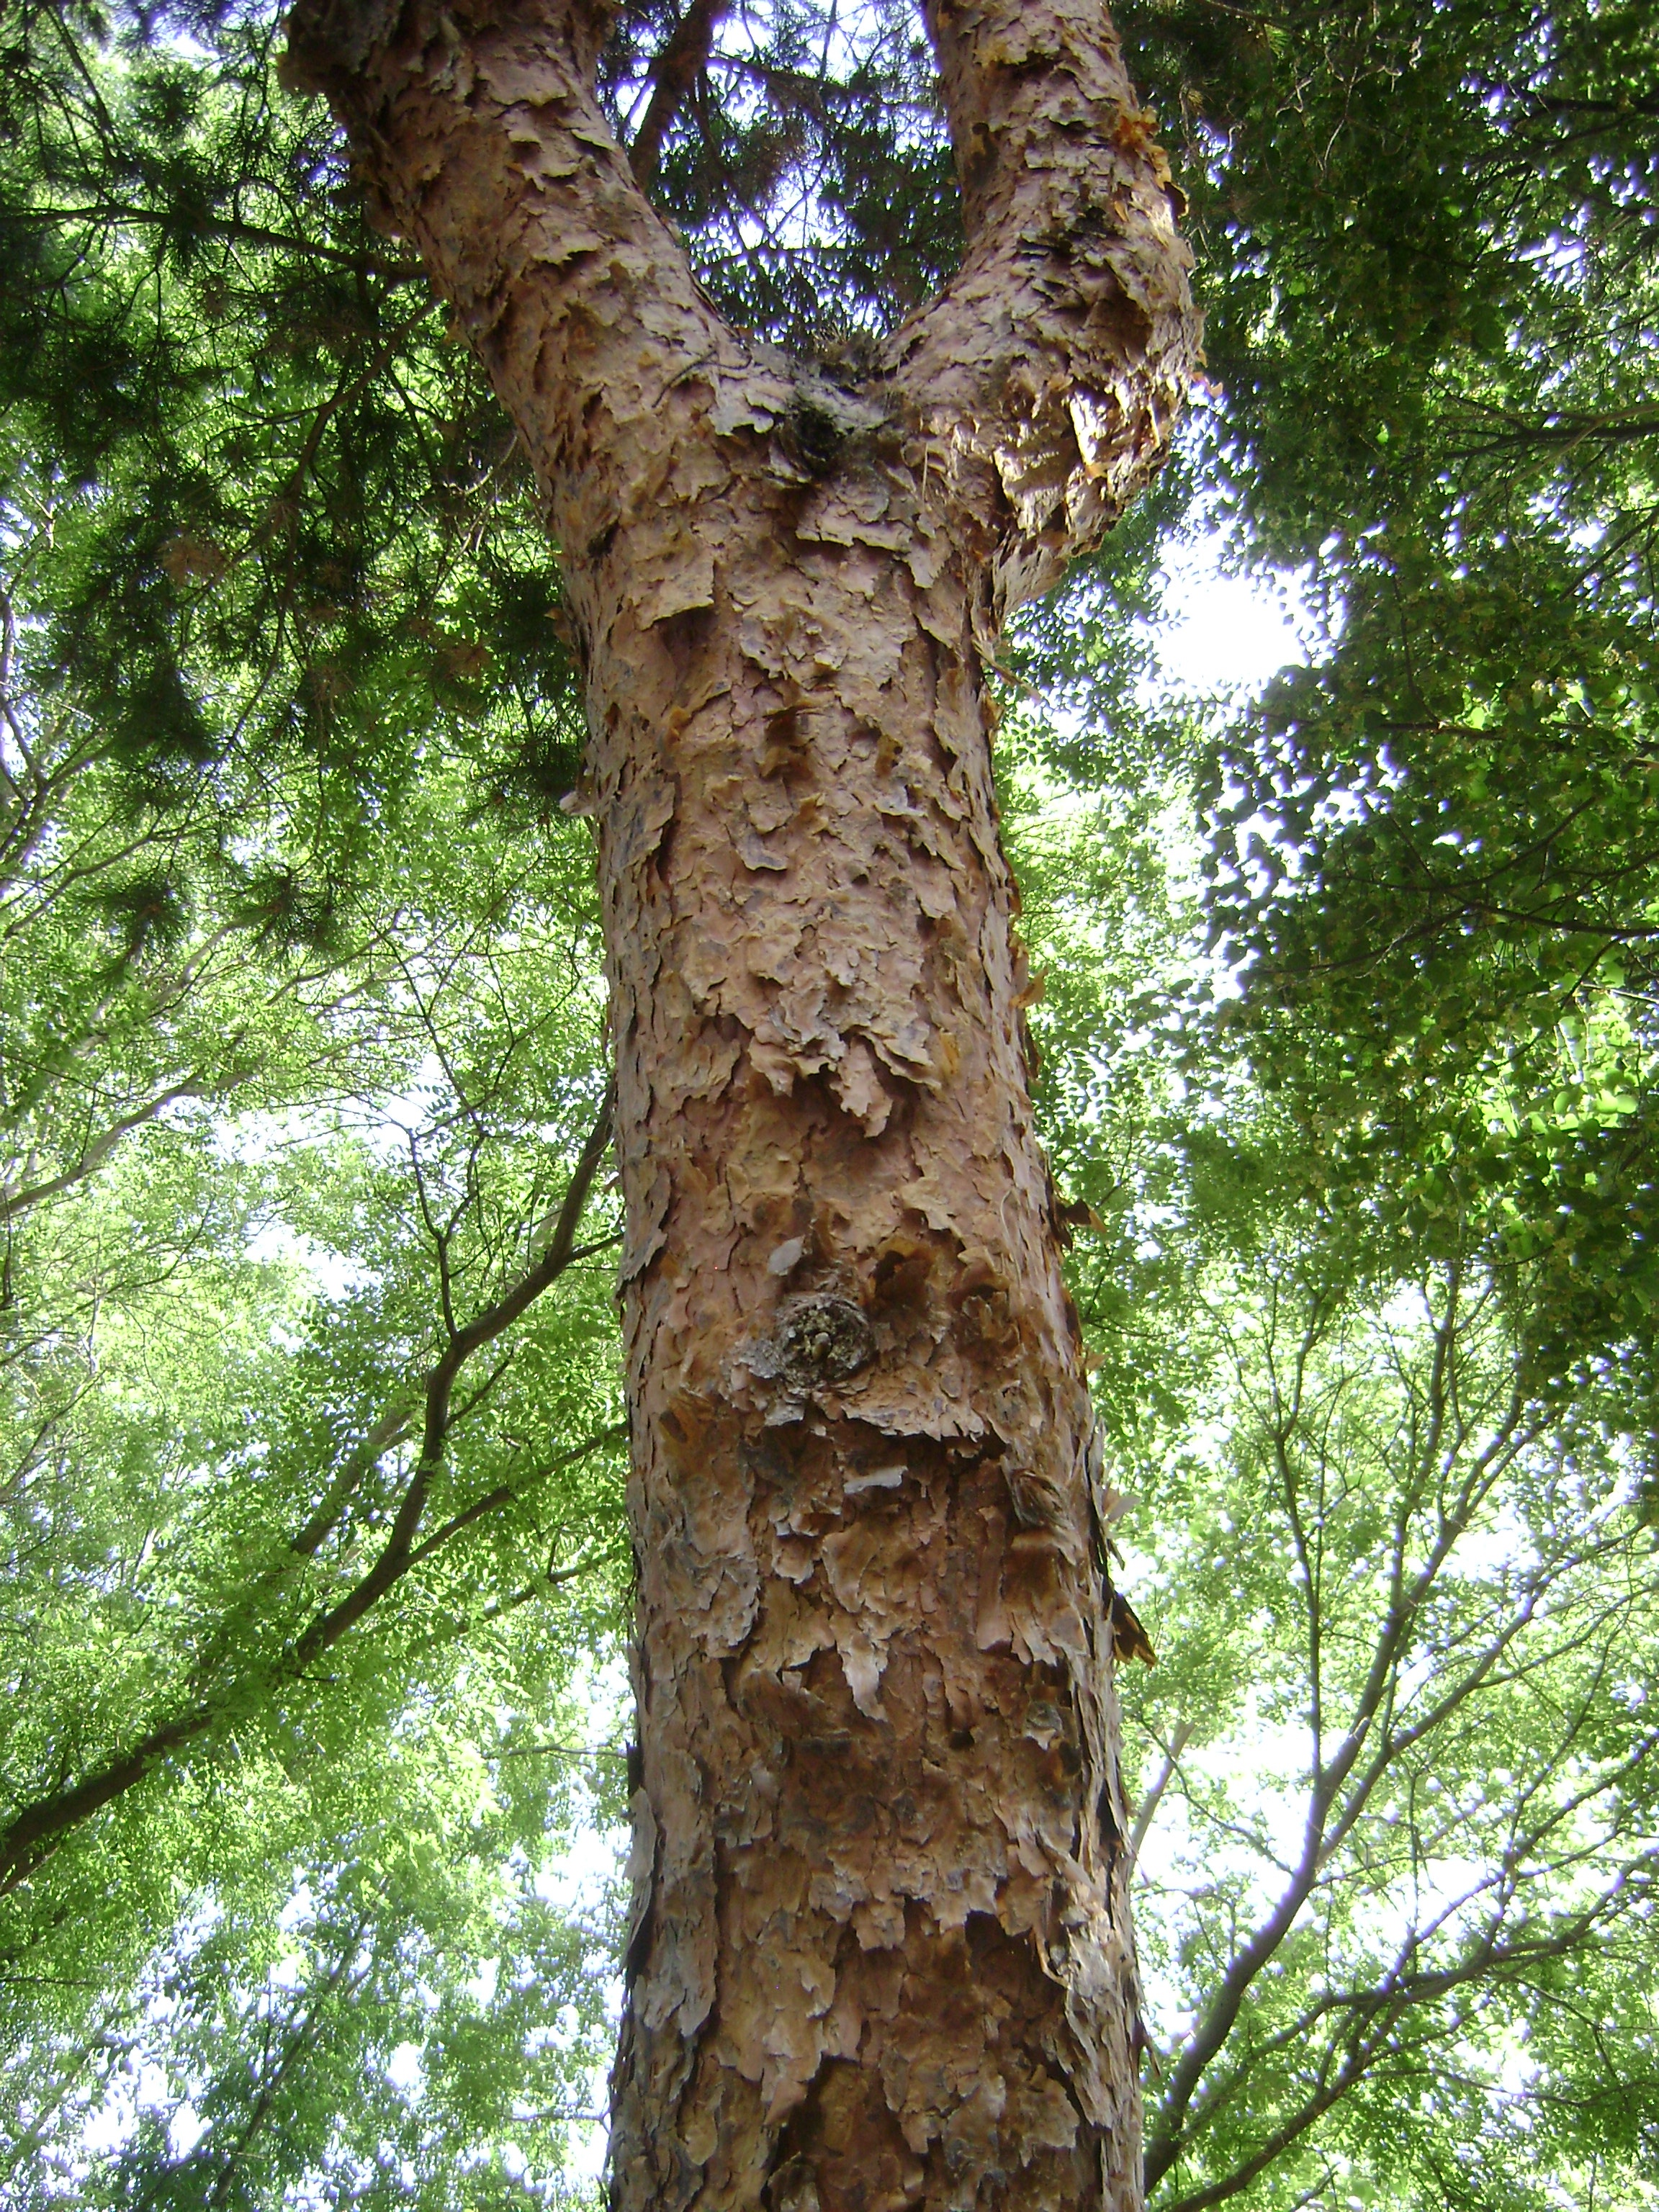 Scotch pine tree bark.